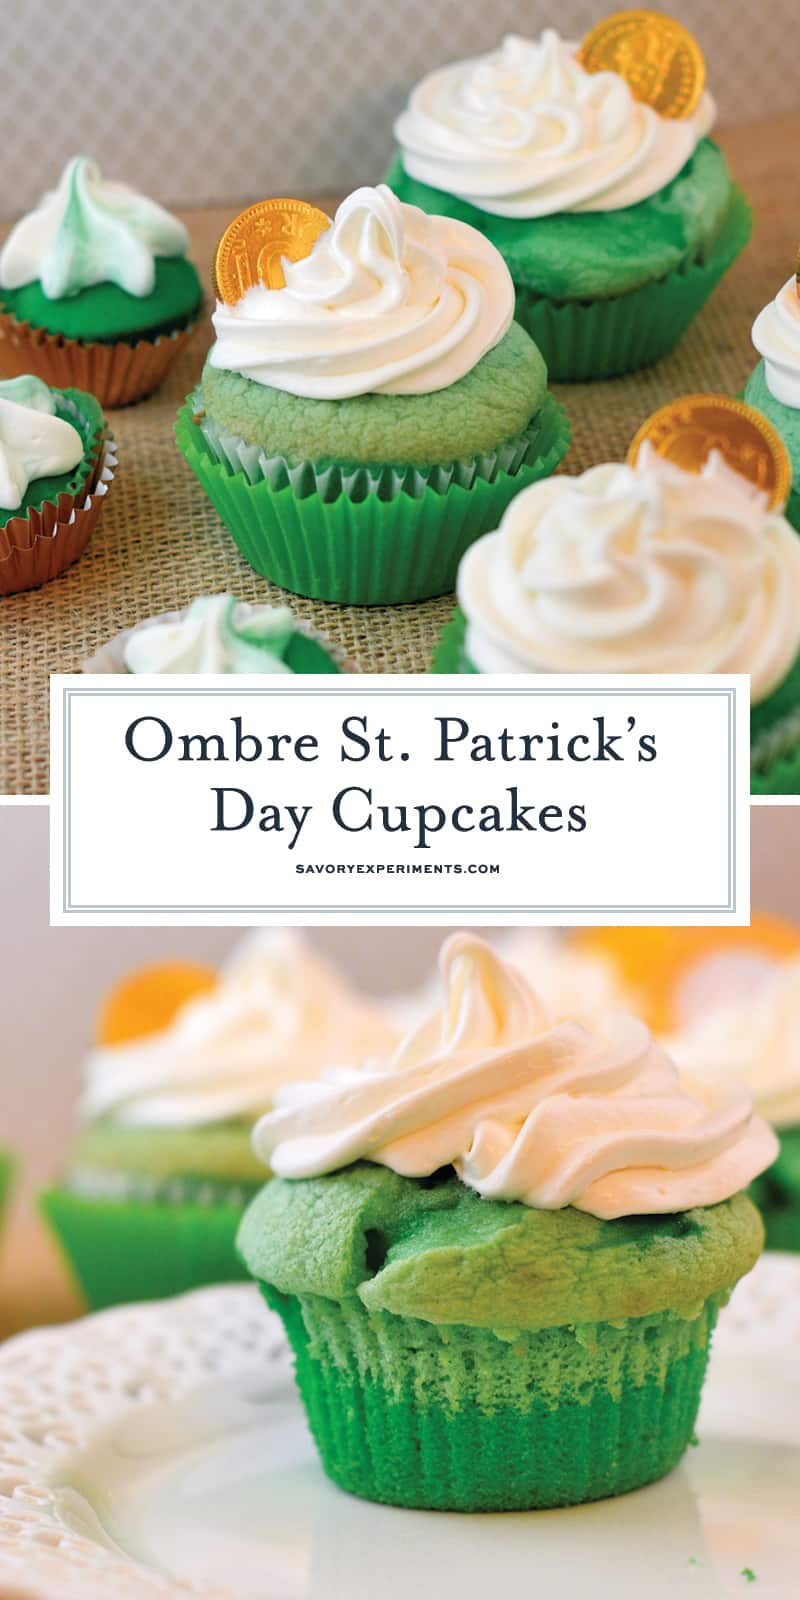 St. Patrick's Day Cupcakes in ombre style. Three shades of green and a whipped frosting. Perfect for your St. Patrick's Day Party! #stpatricksdaycupcakes #stpatricksdaydessert www.savoryexperiments.com